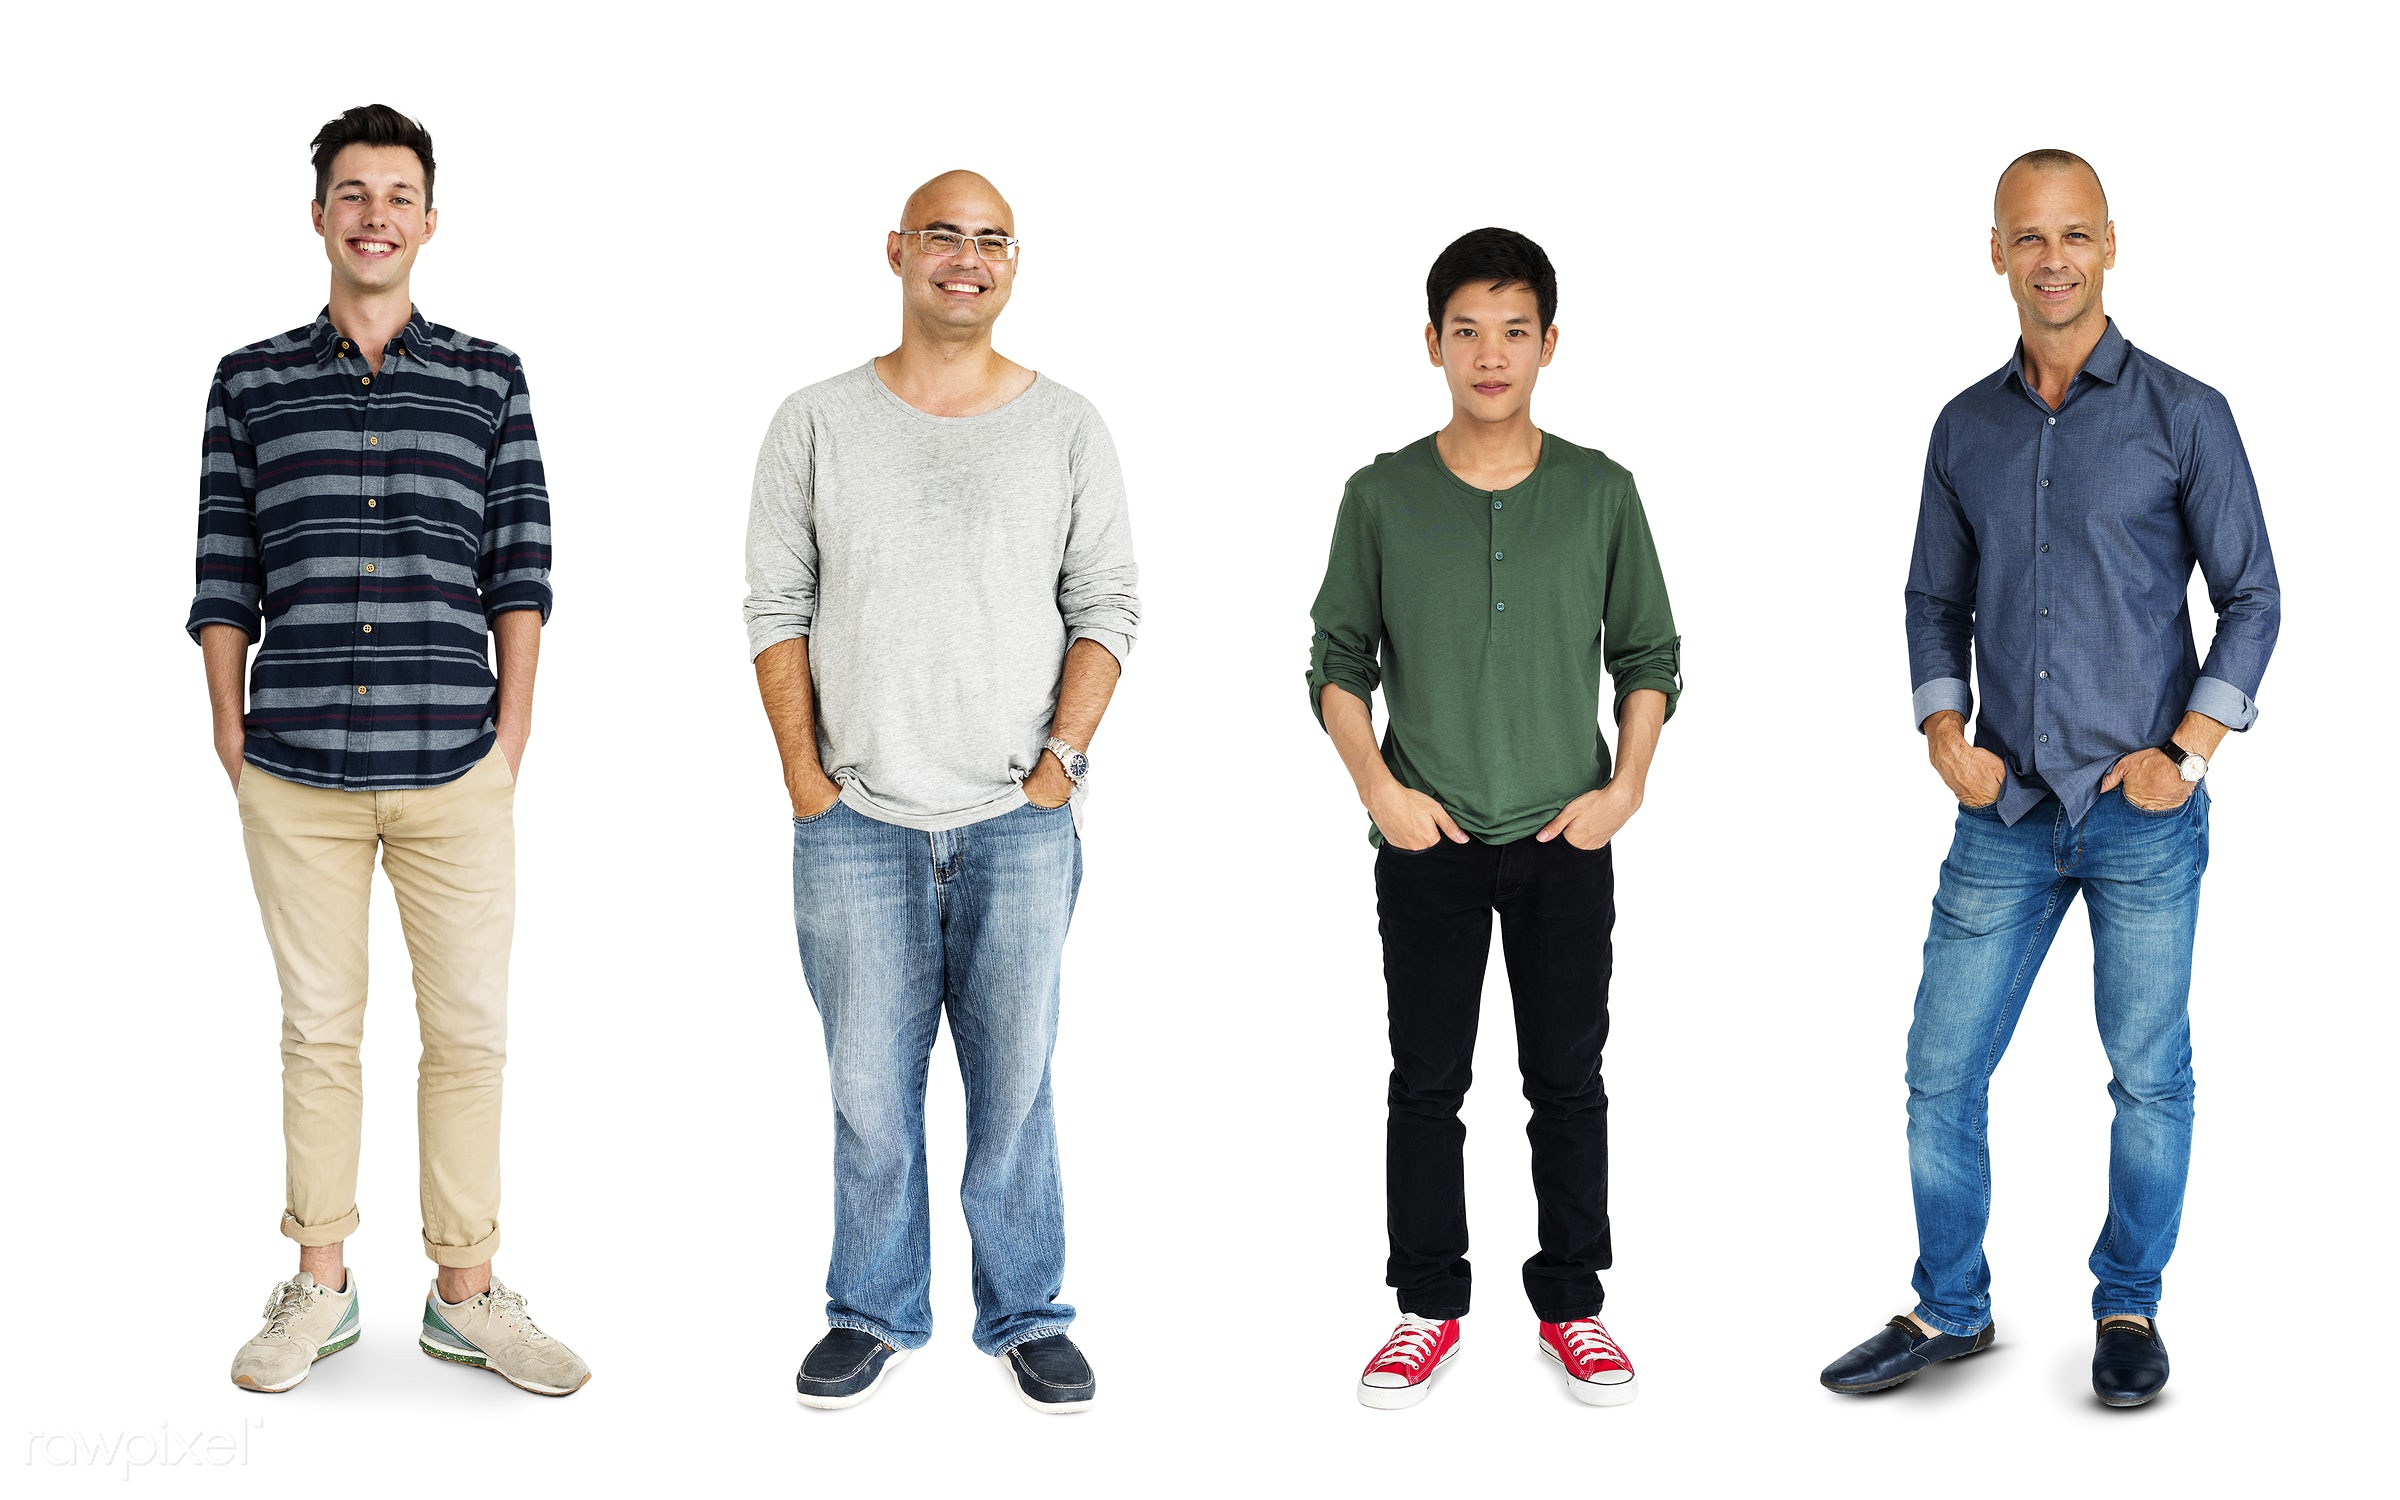 Diverse people set - studio, person, diverse, relax, set, little, collection, people, attraction, together, caucasian, asian...